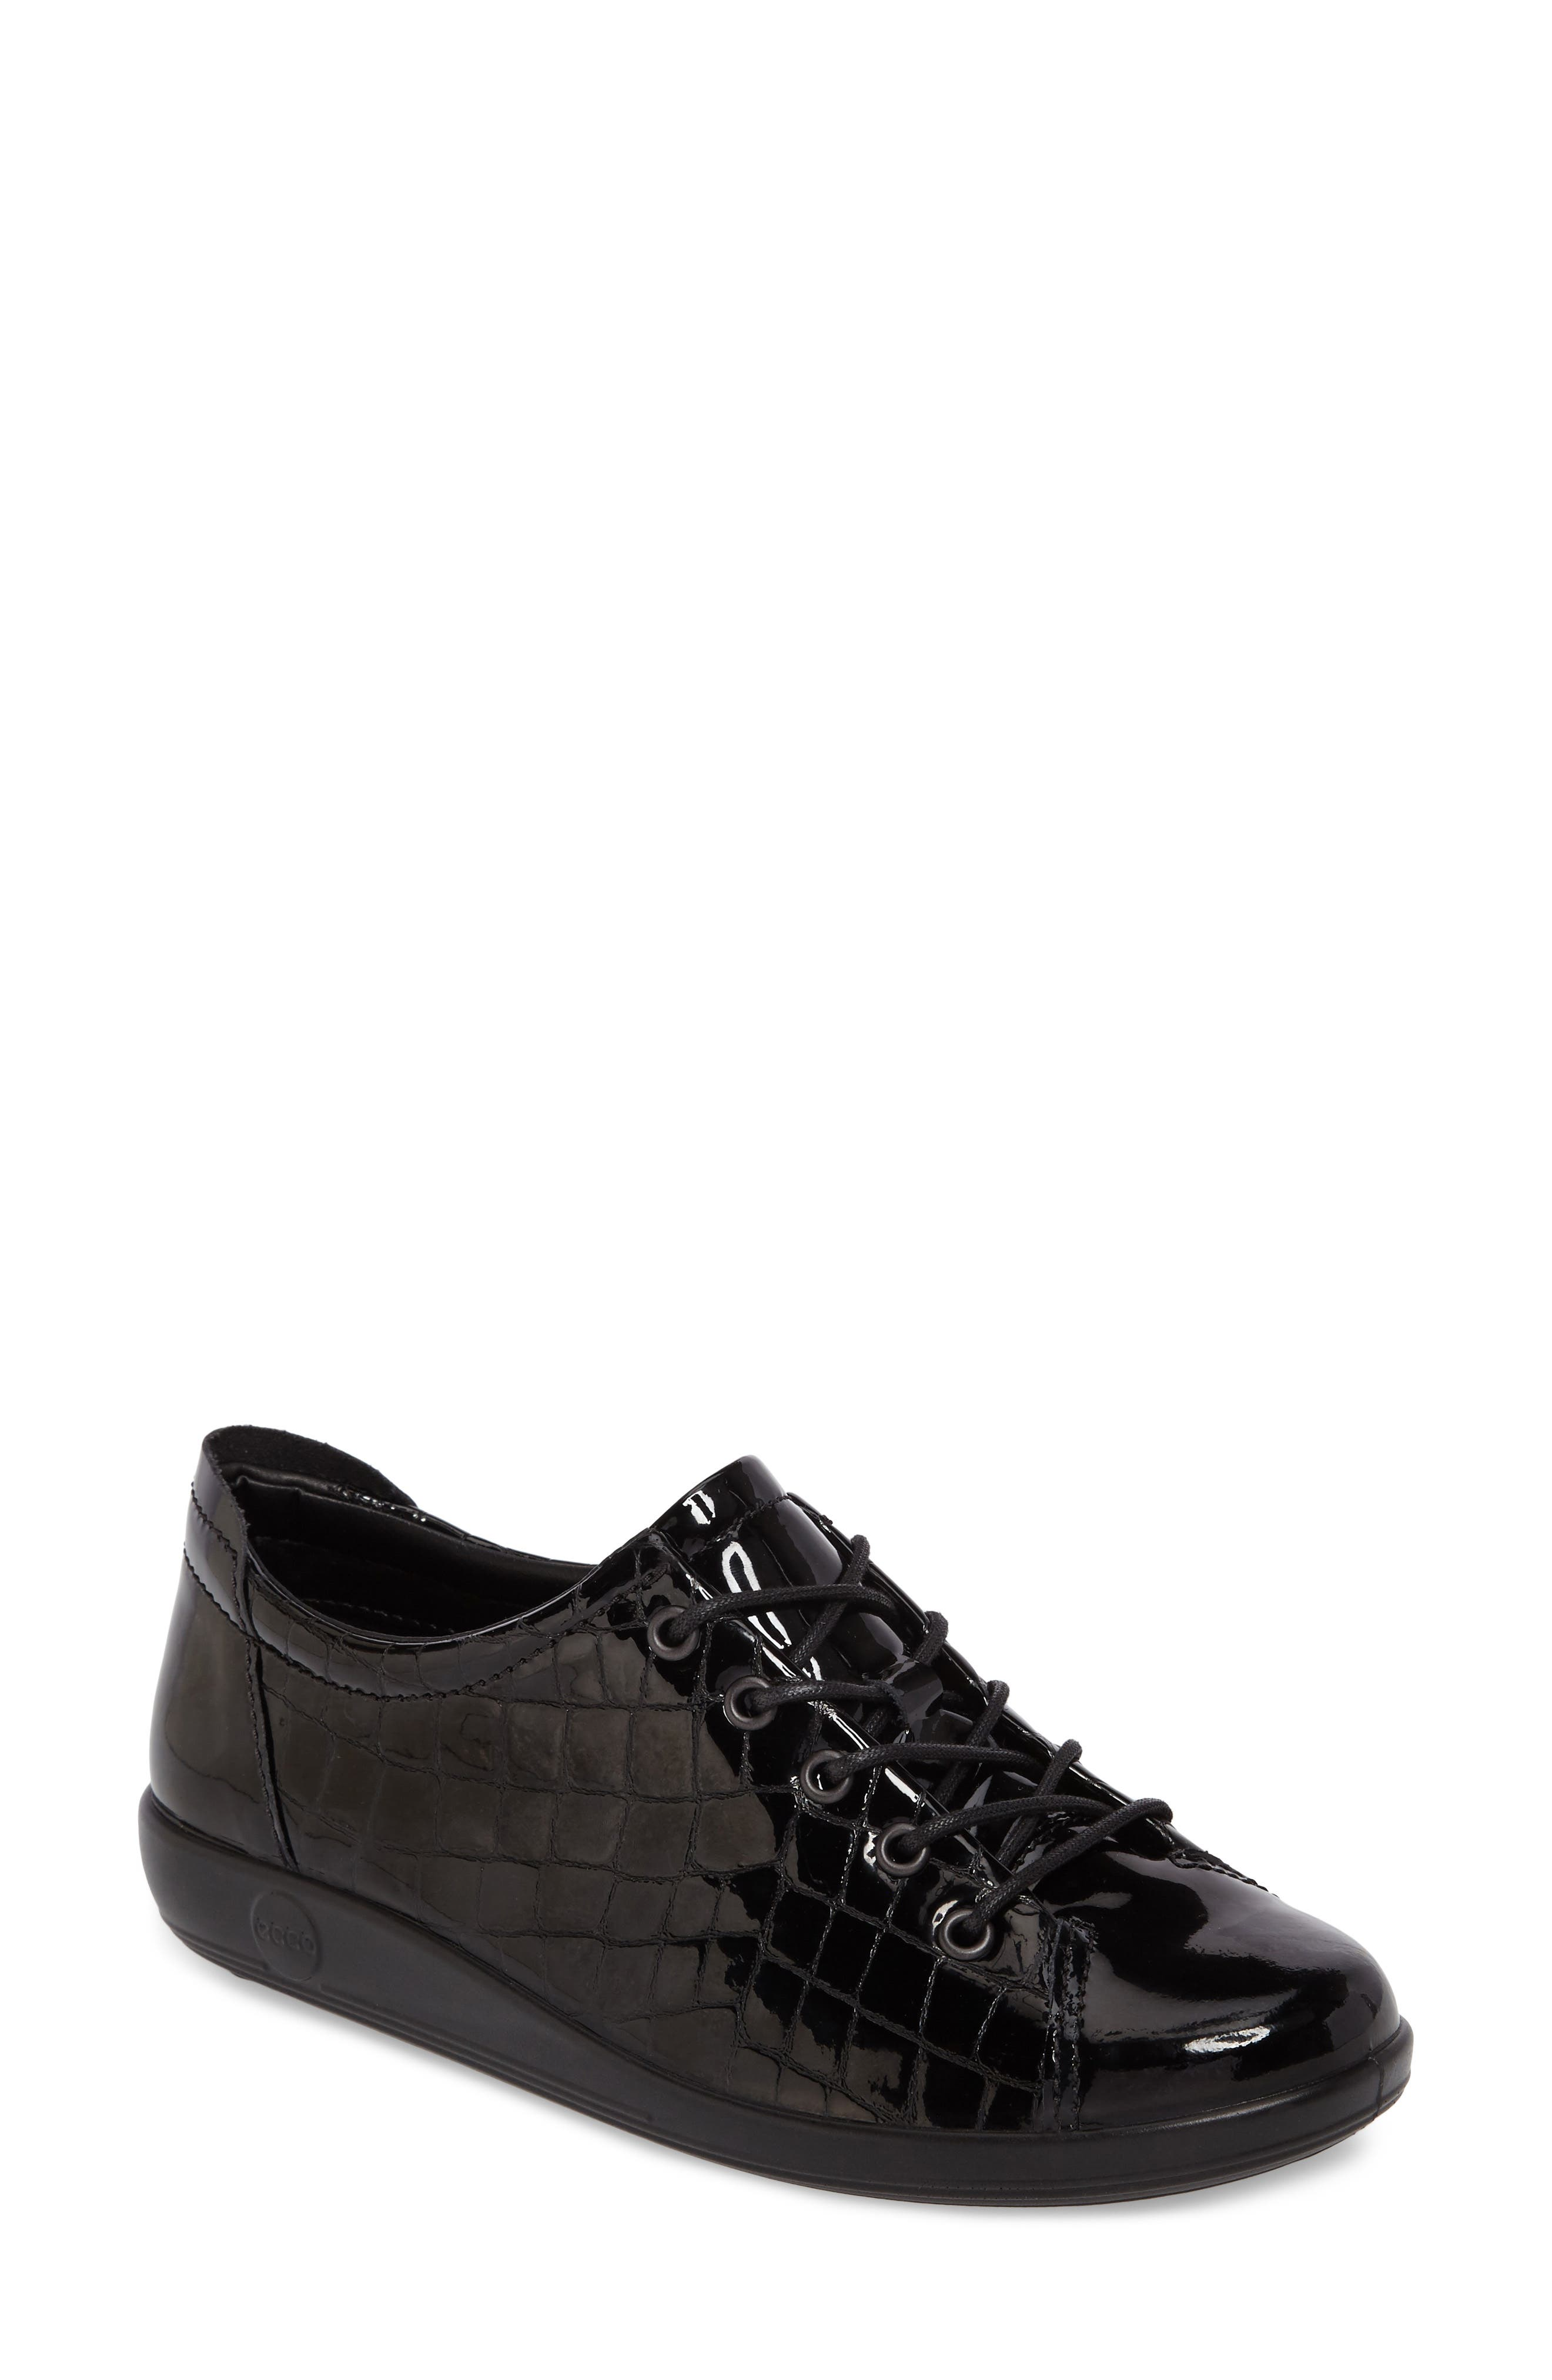 'Soft 2.0' Sneaker,                         Main,                         color, Black Patent Leather